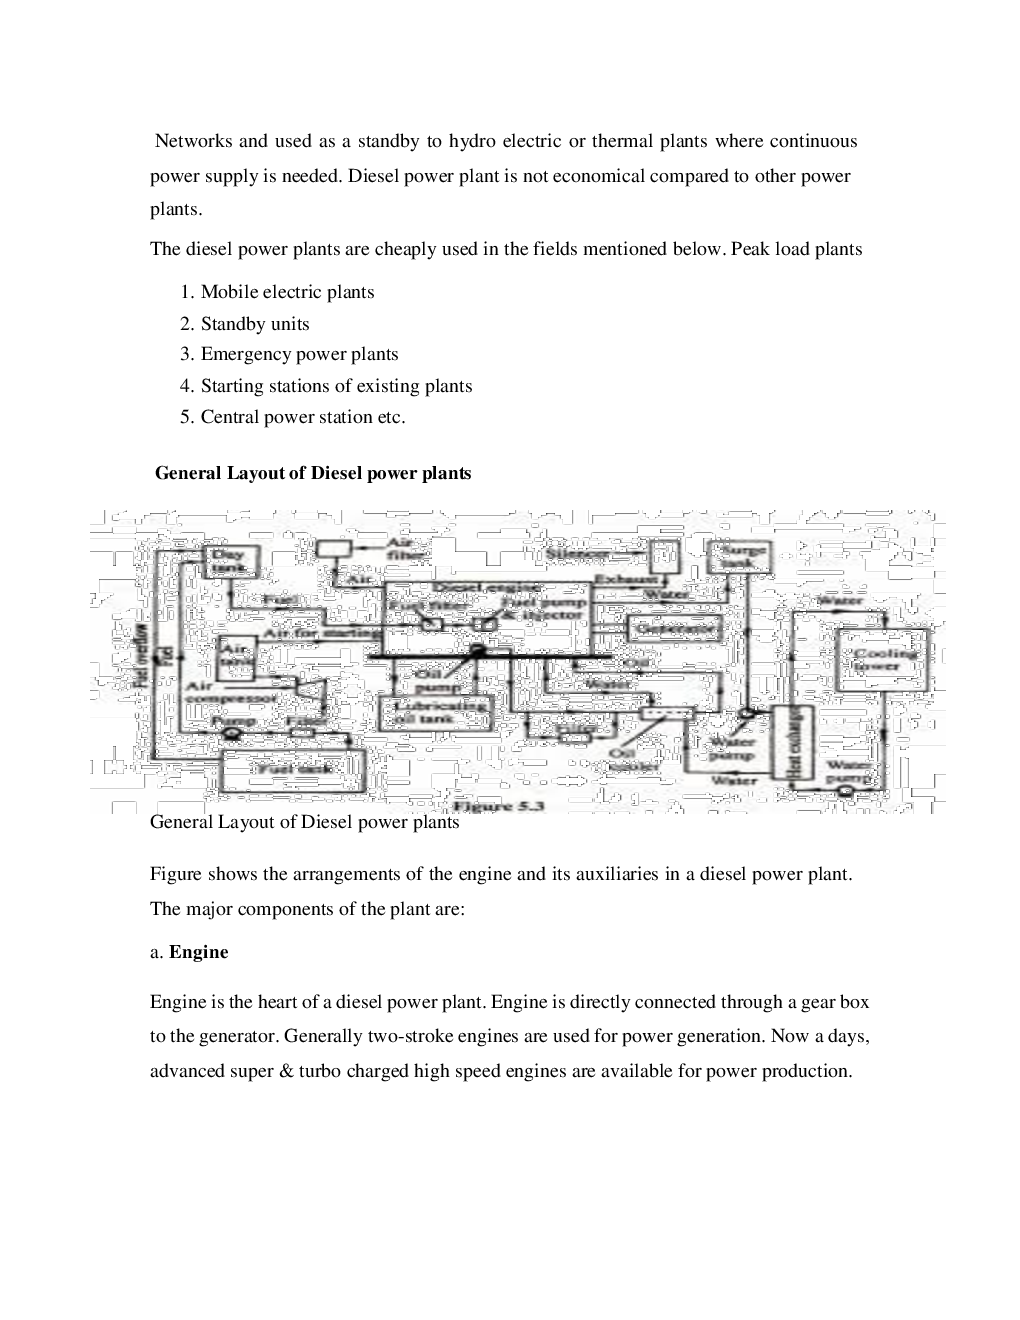 Diesel Power Plant Layout And Working Download Vtu Enotes On Engineering For Mechanical Experience In Web Reader